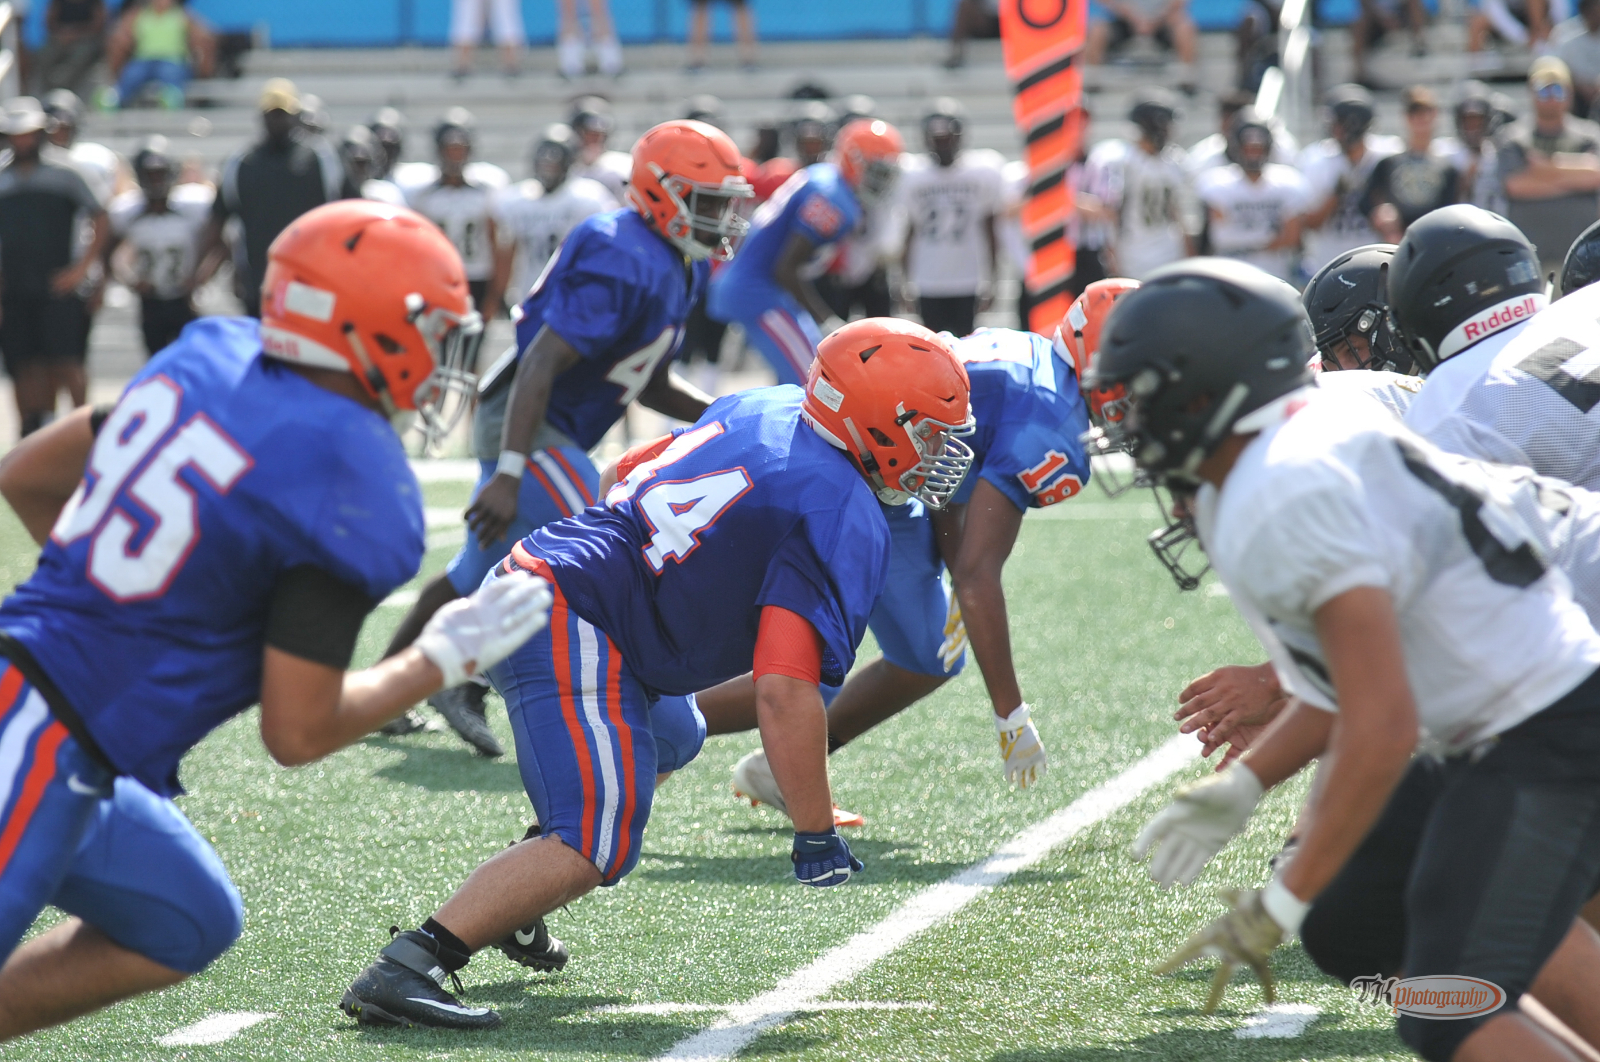 Buy Tickets Now! West Orange Hosts Olympia Game.